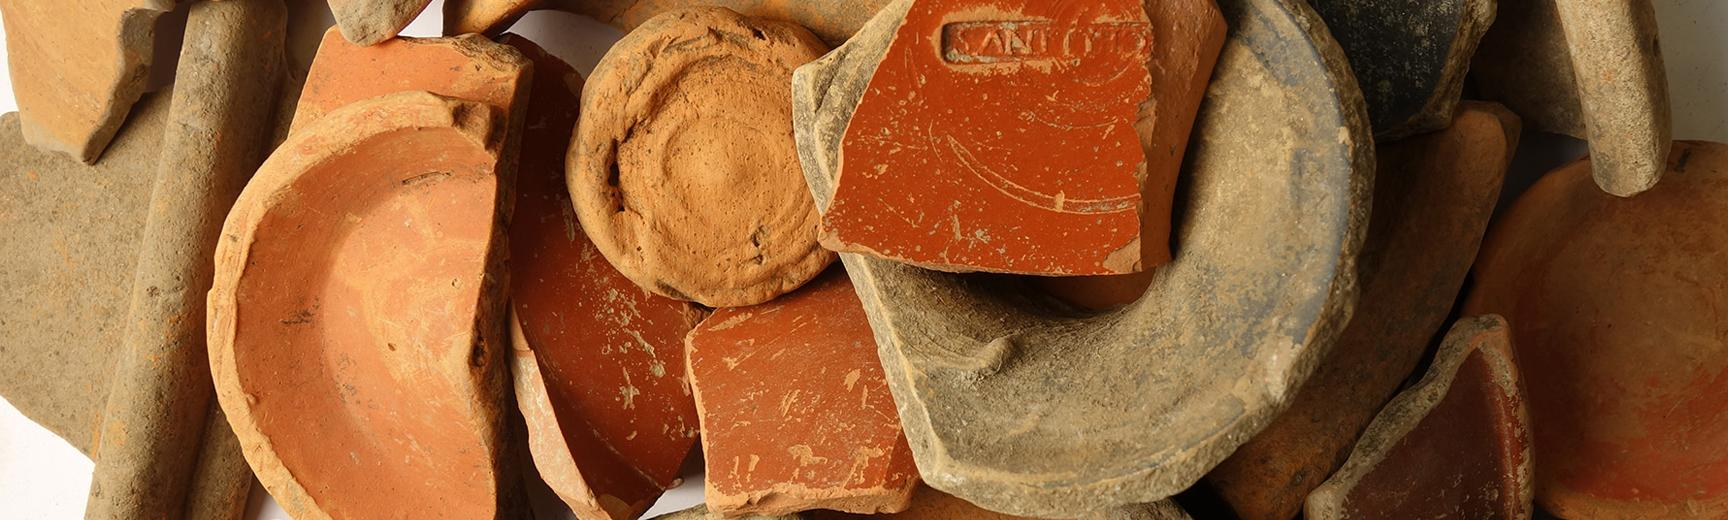 Pottery finds from the Berkshire Downs